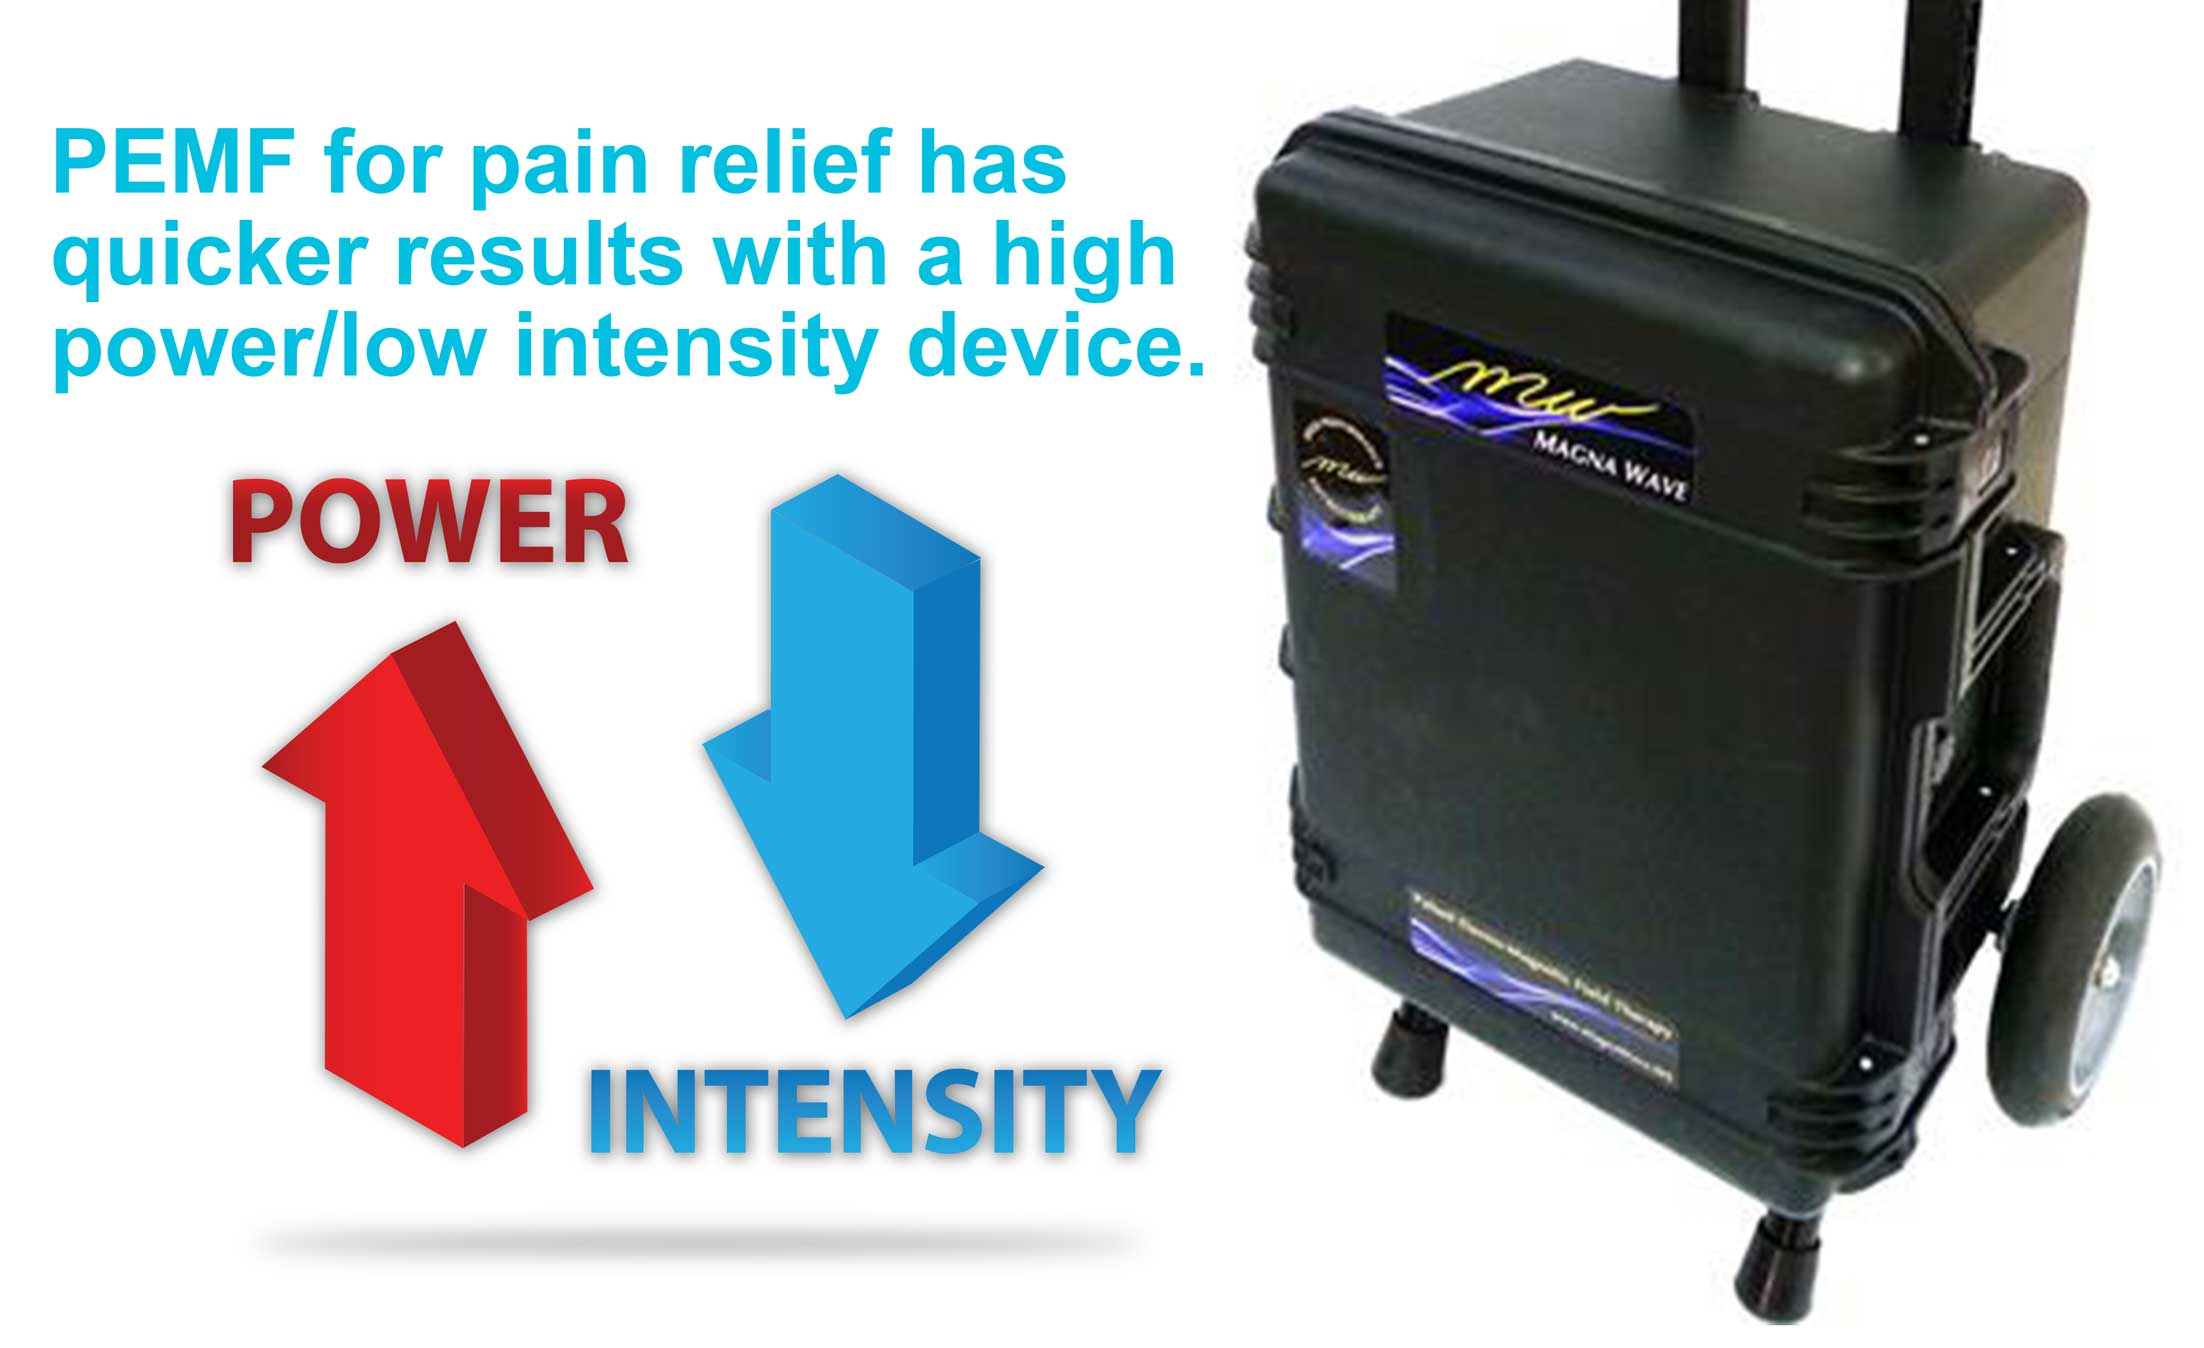 PEMF for pain relief has quicker results with a high power/low intensity device